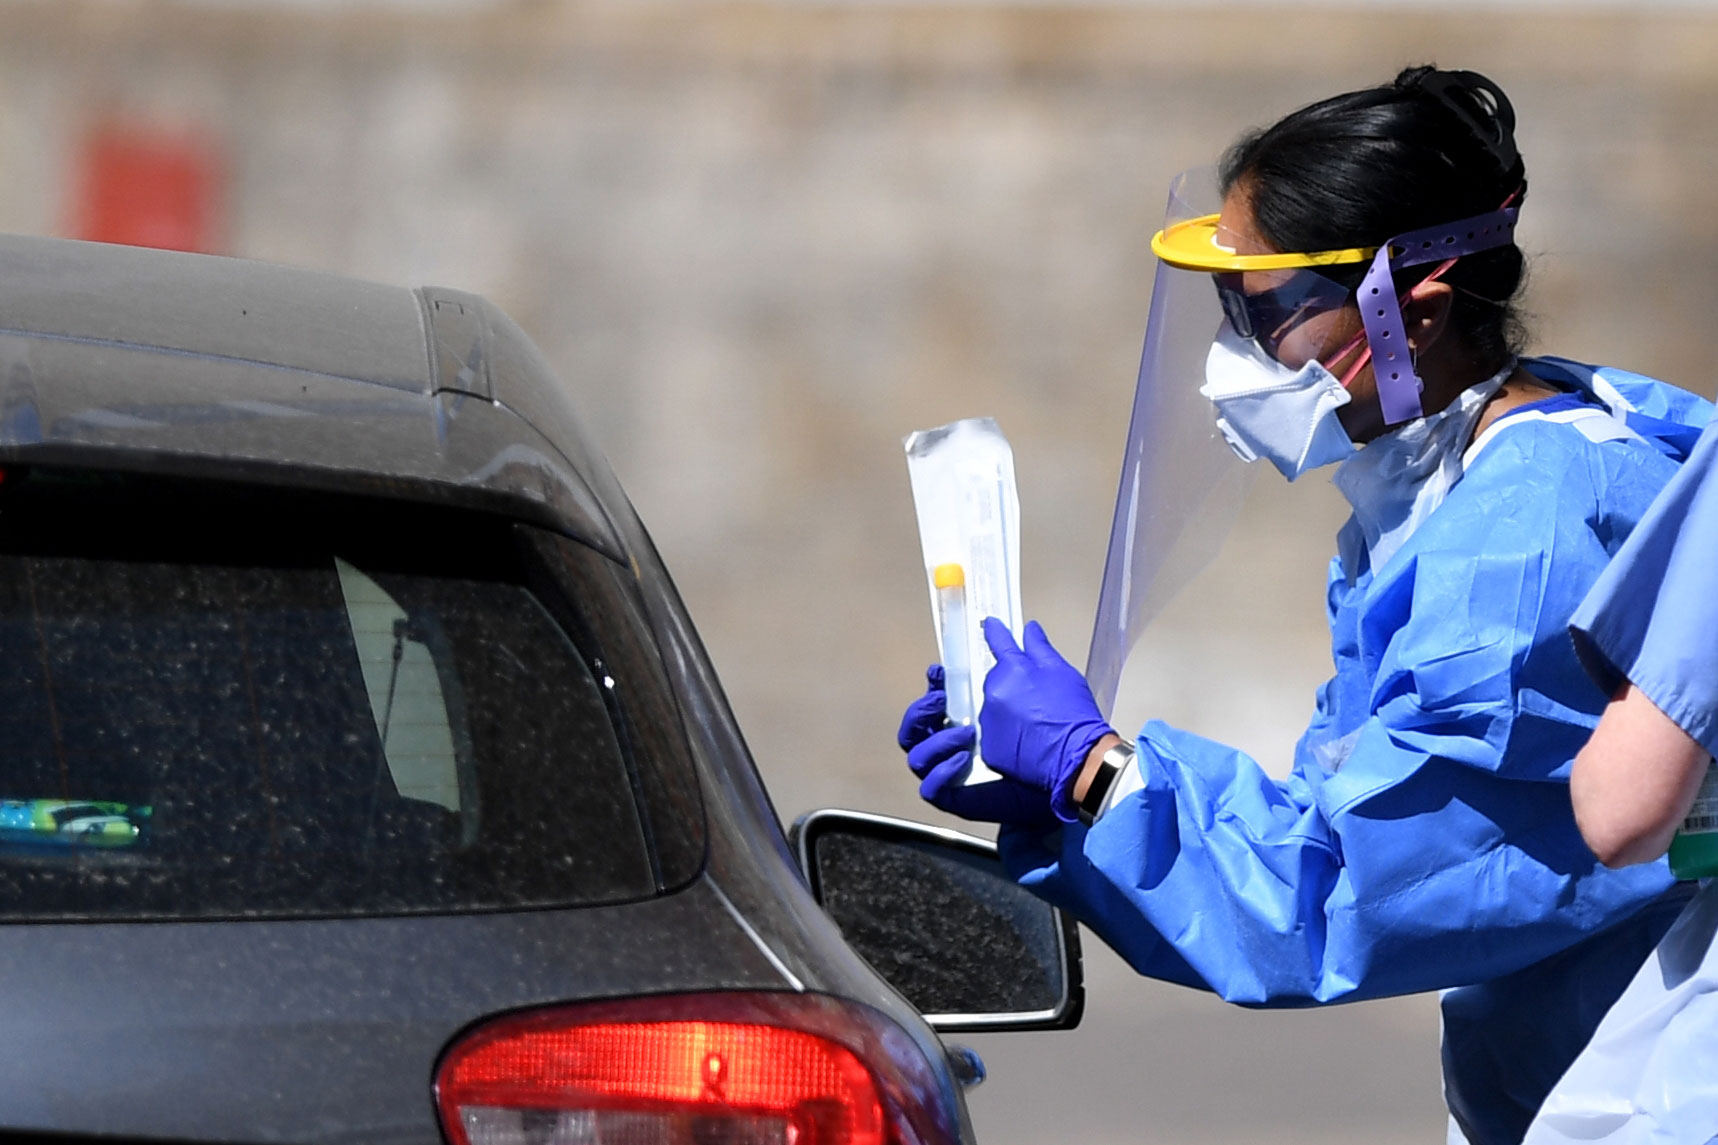 A medical worker speaks to a driver about a coronavirus test kit at a testing facility in London on April 25.